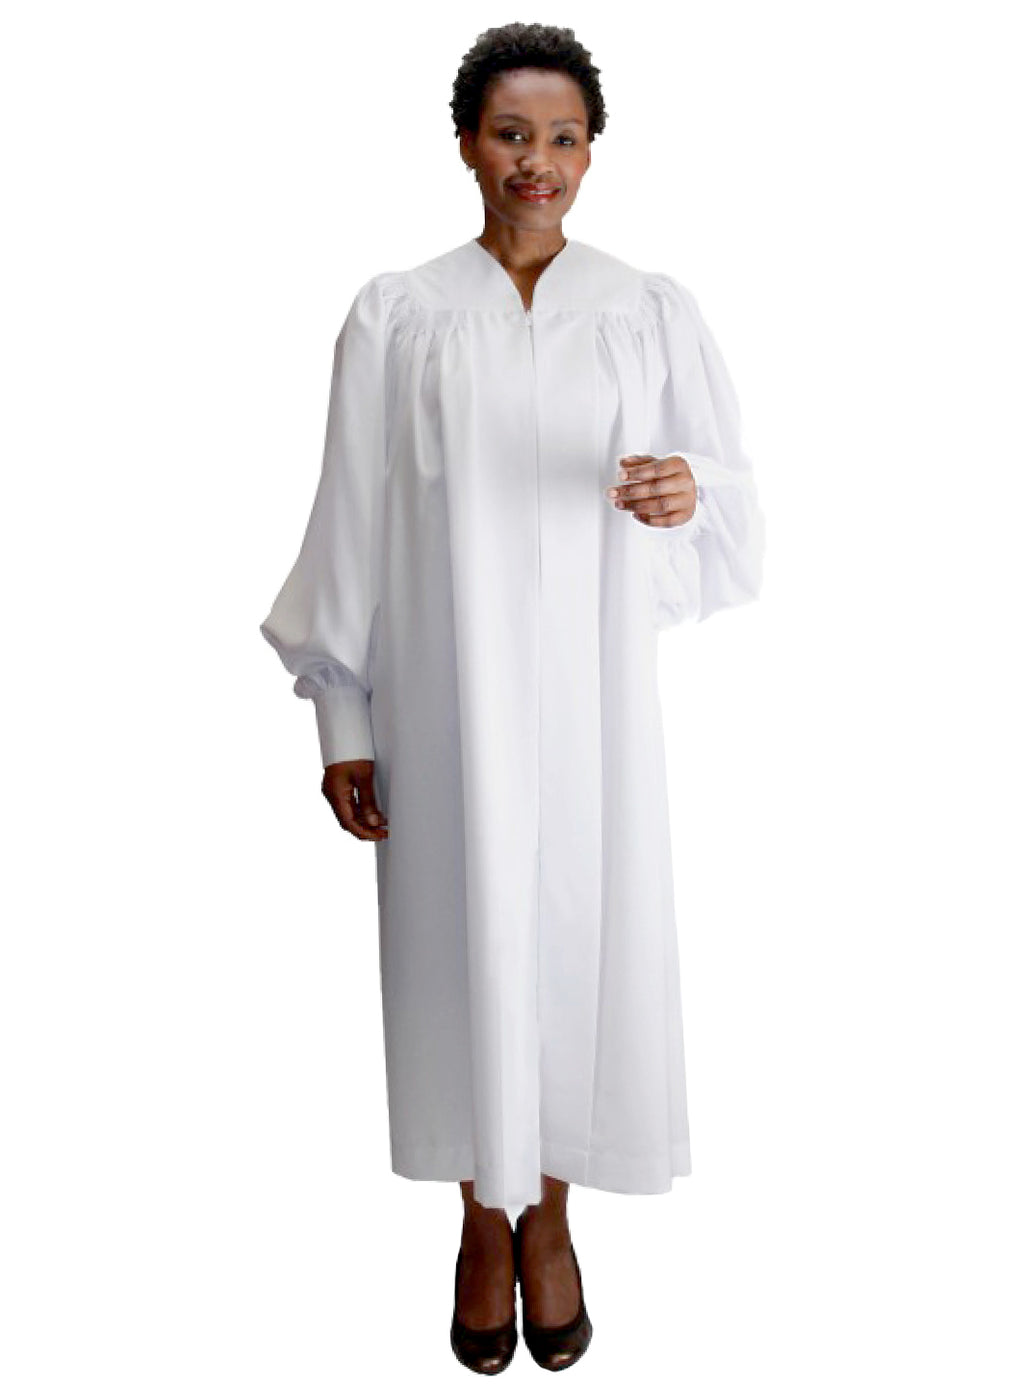 Cuffed Baptismal & Choir Robe